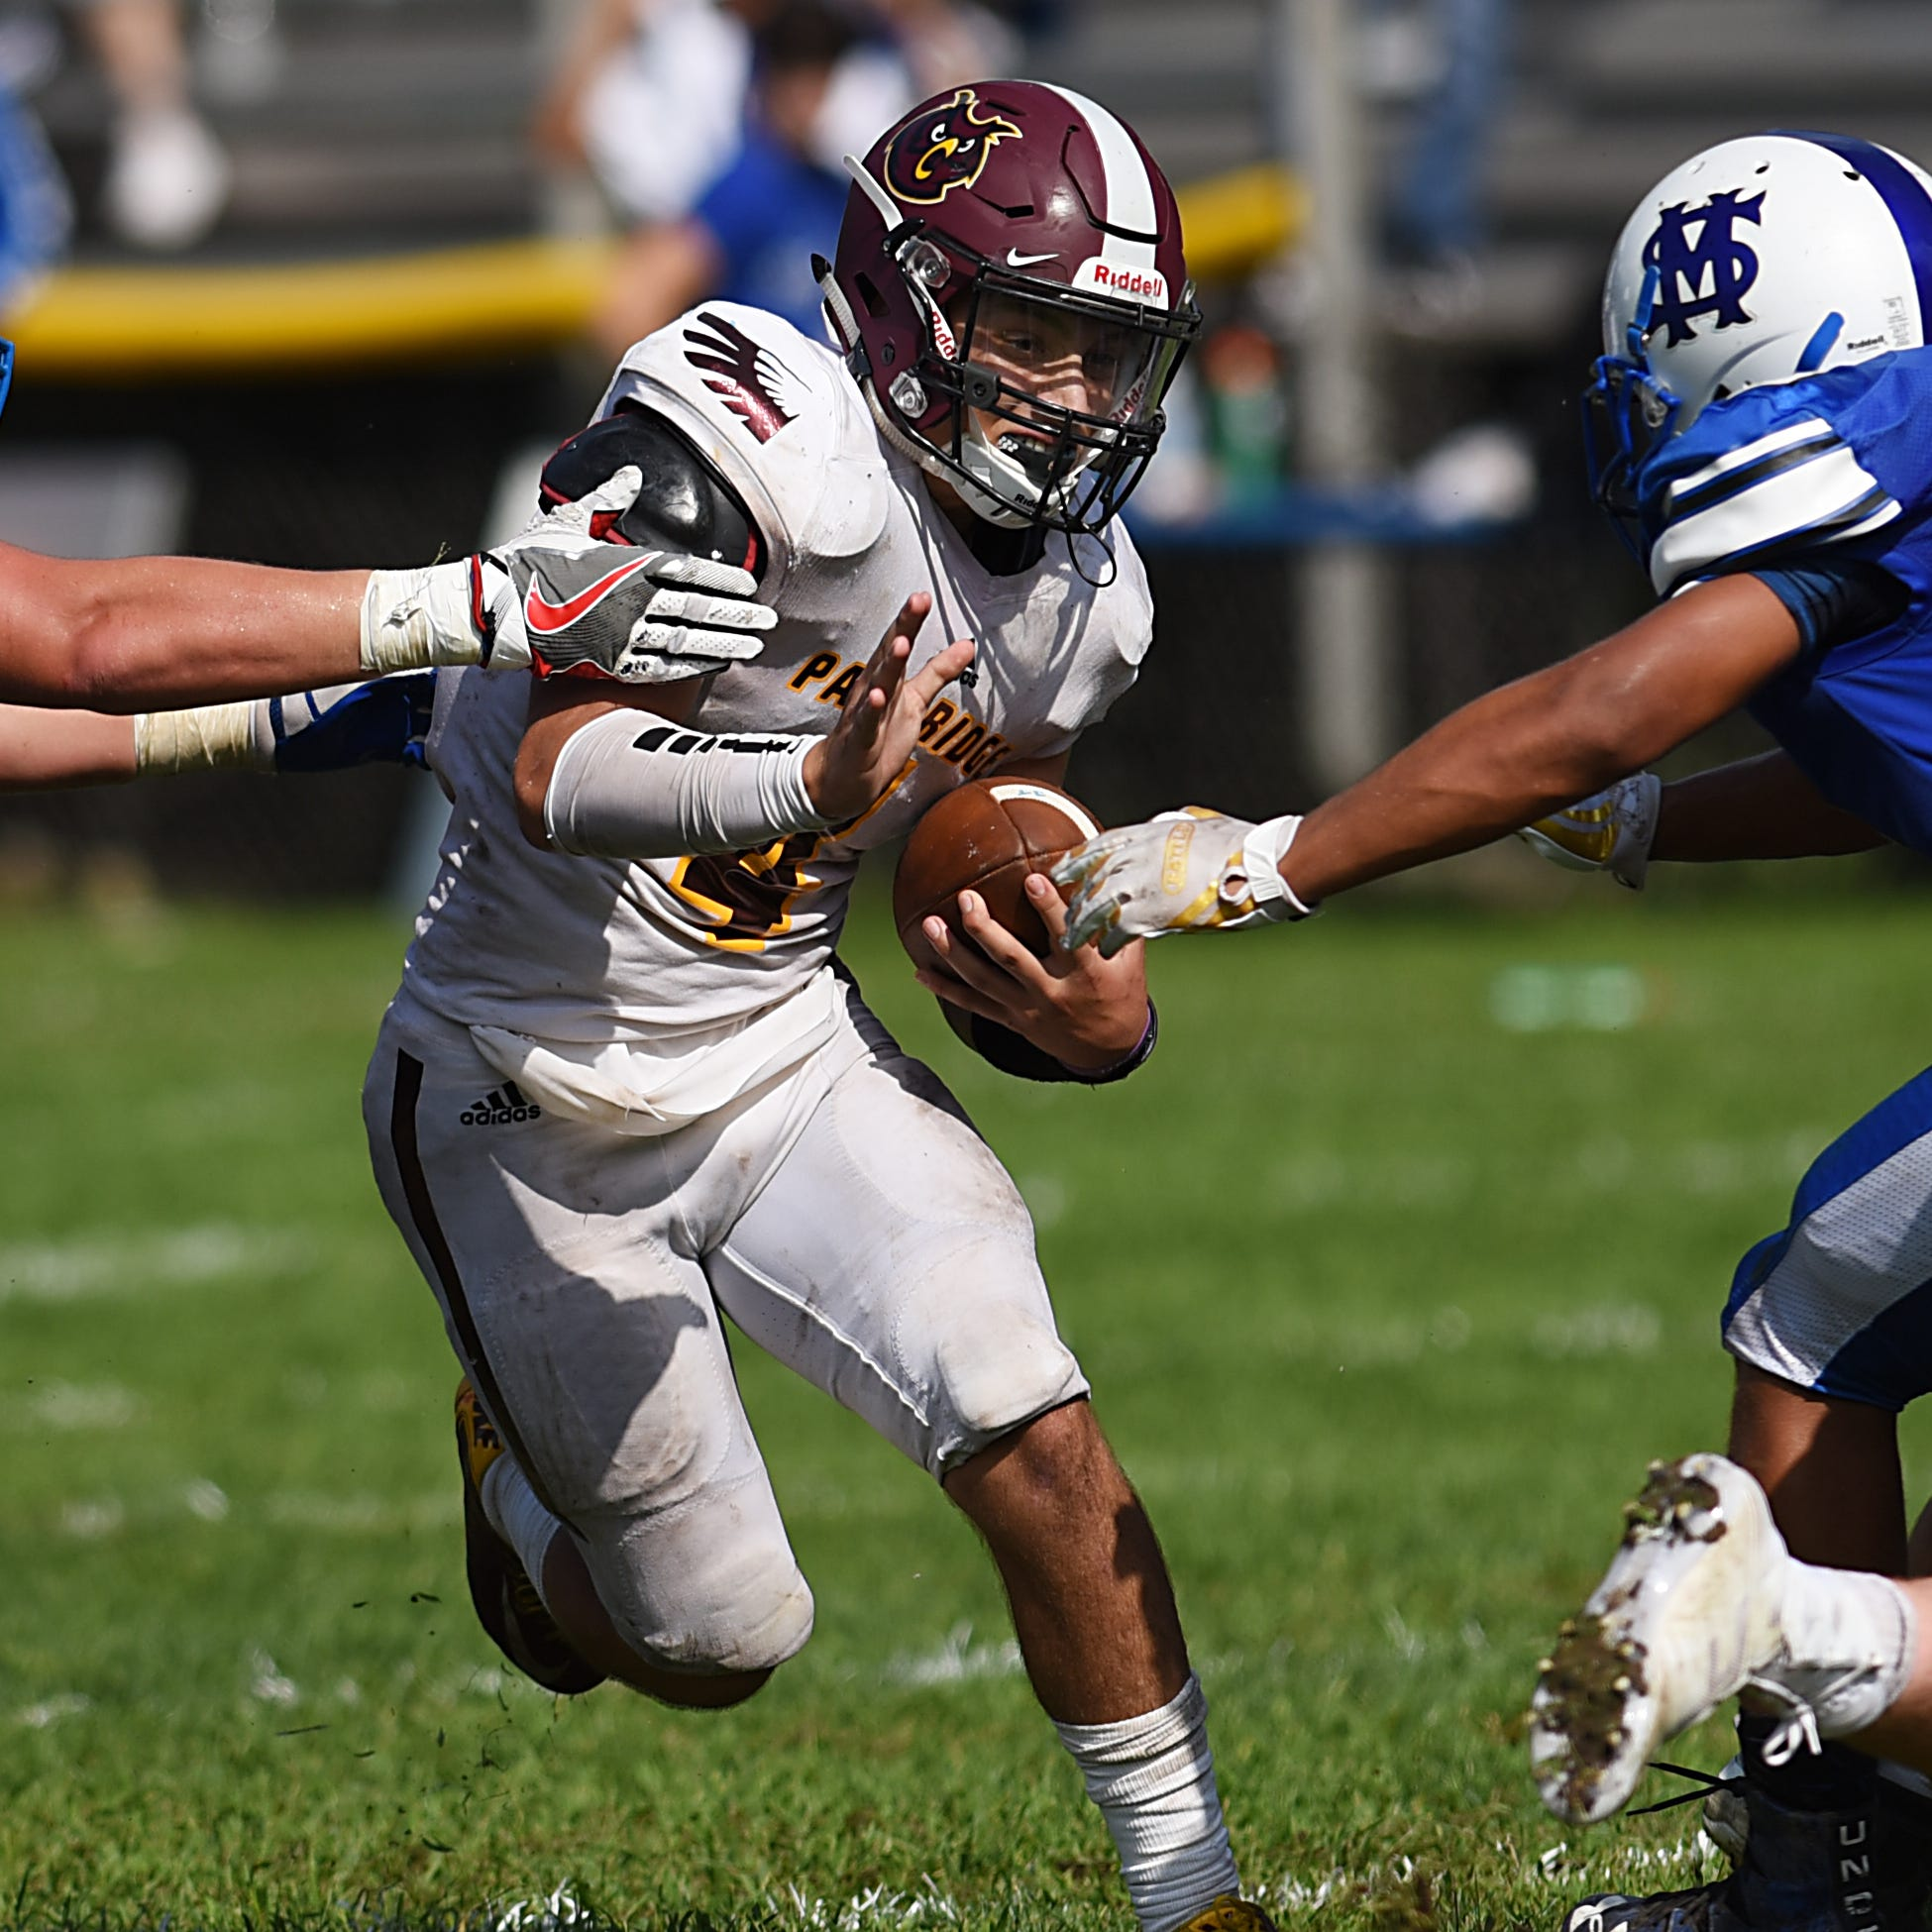 Vote for North Jersey Football Player of the Week for Week 2